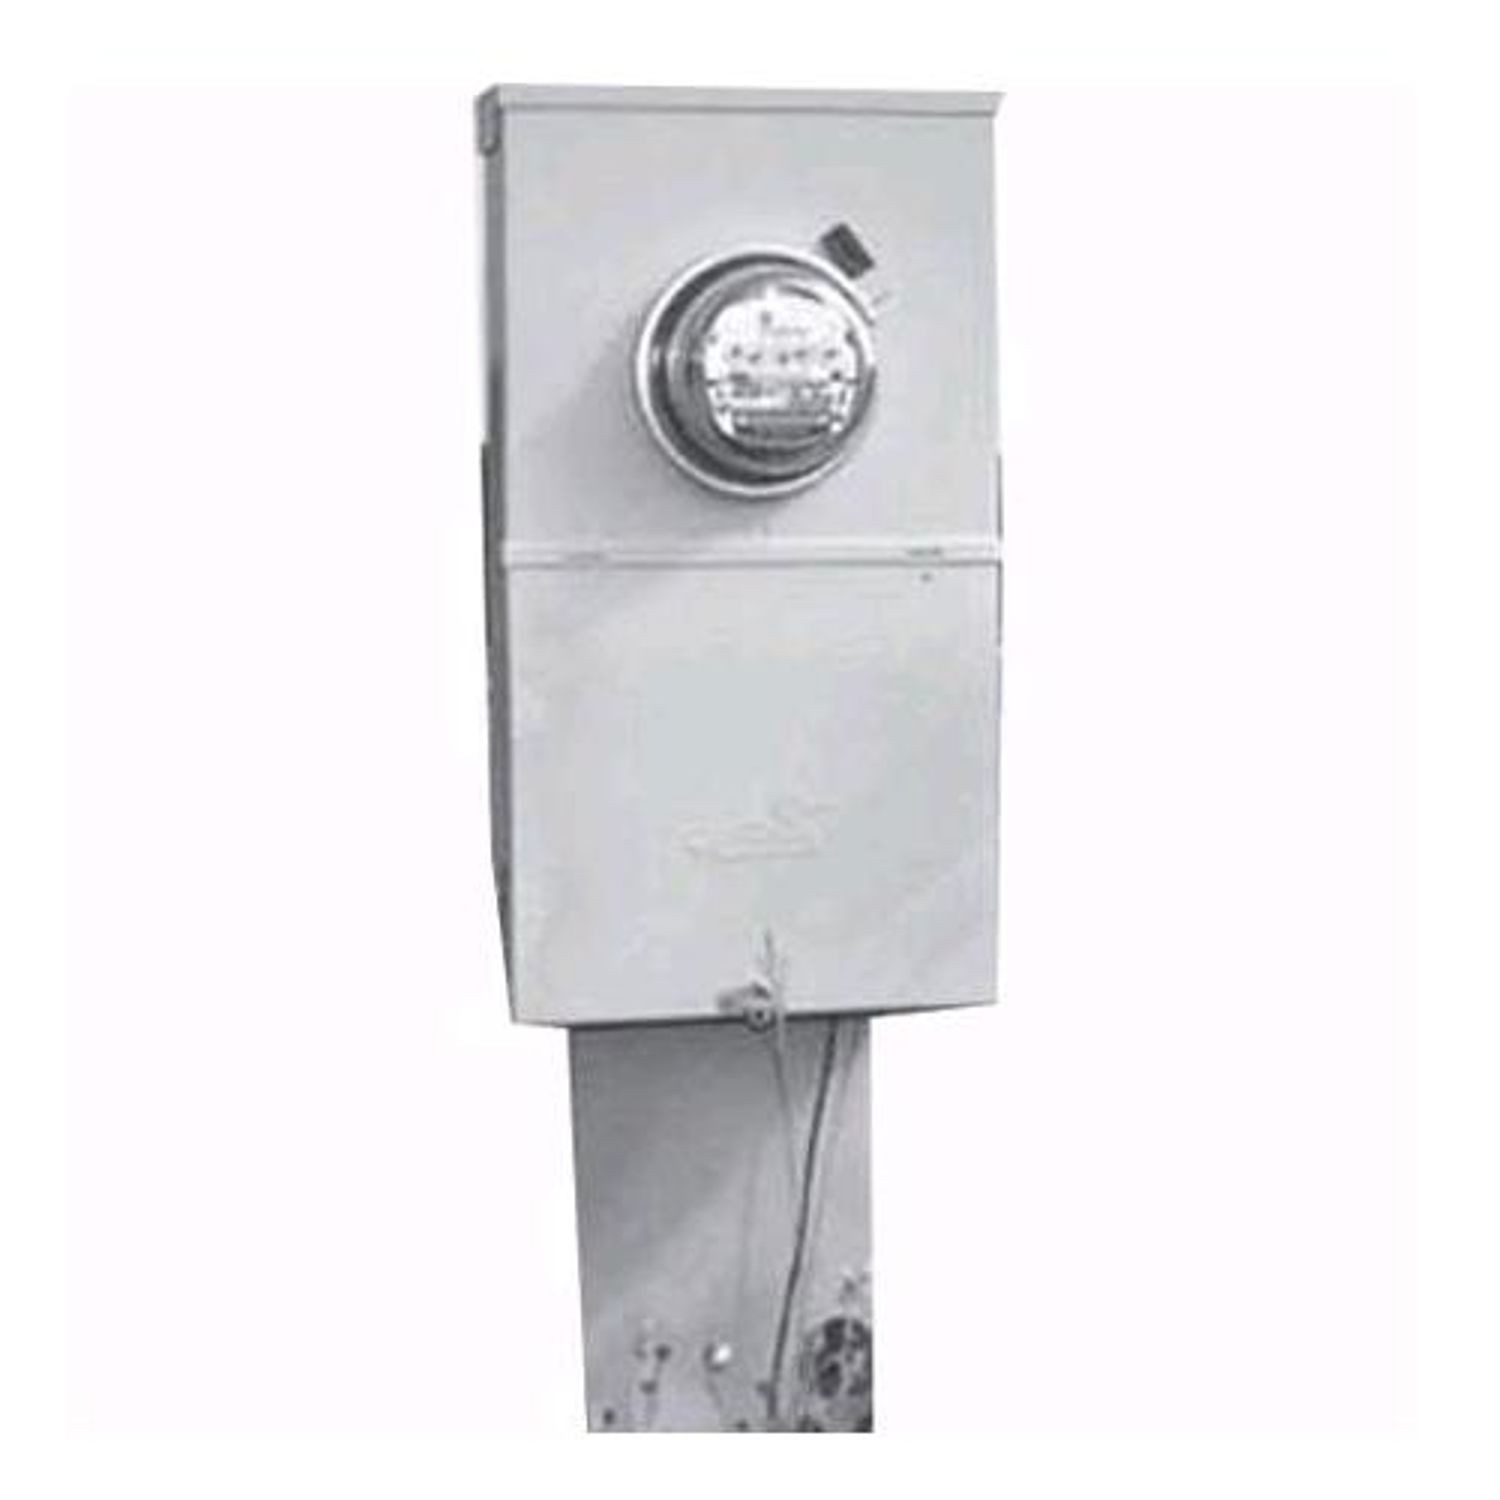 Midwest® M281C1P6H Ring Metered Power Outlet Pedestal, 120/240 VAC ...